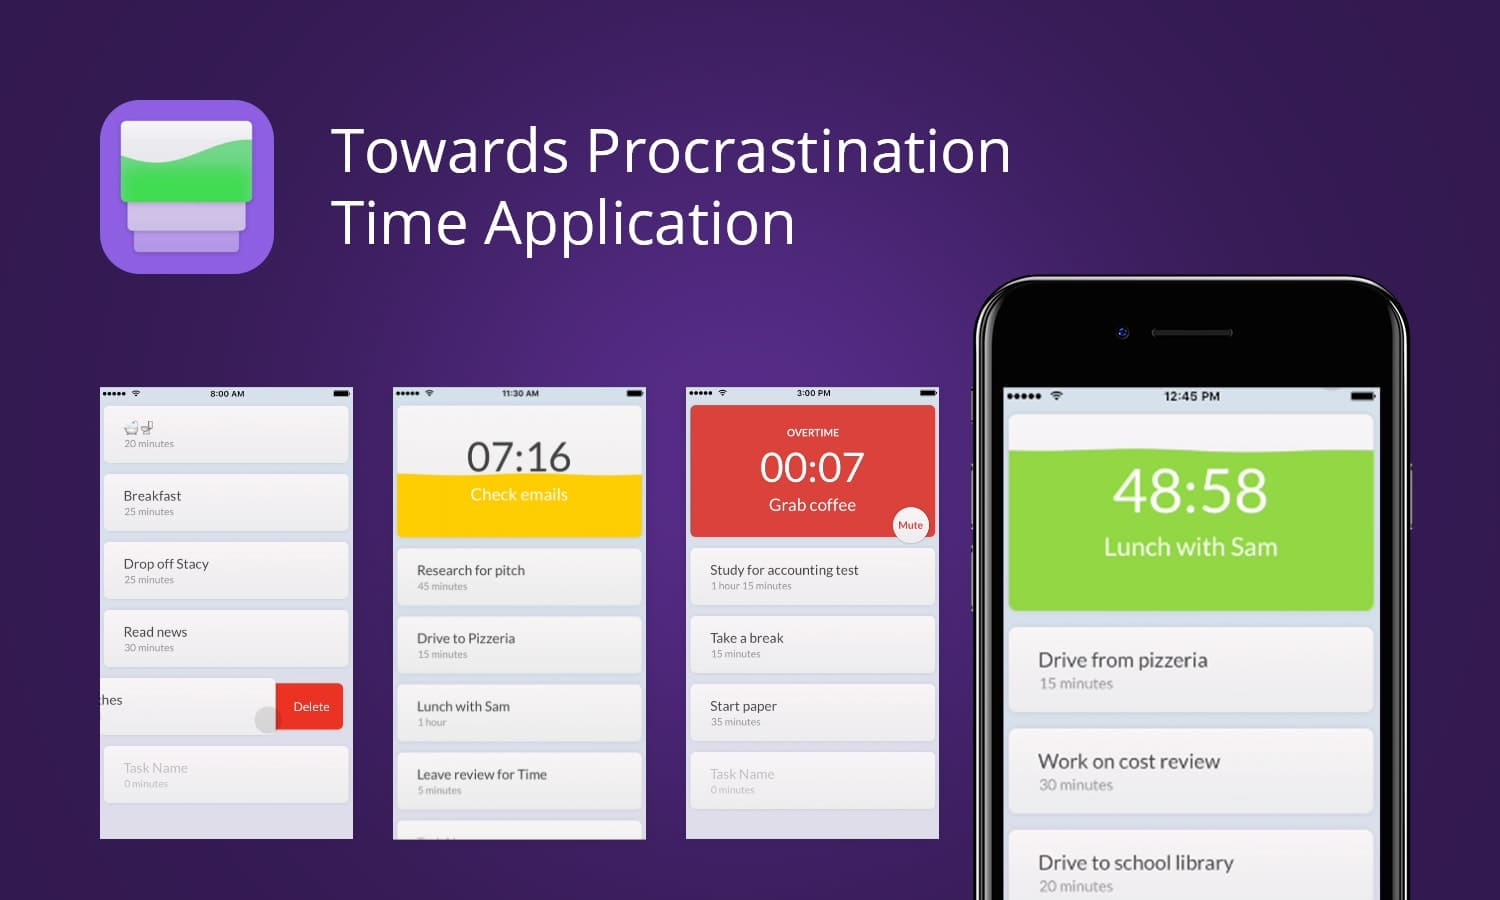 Towards Procrastination Time Application